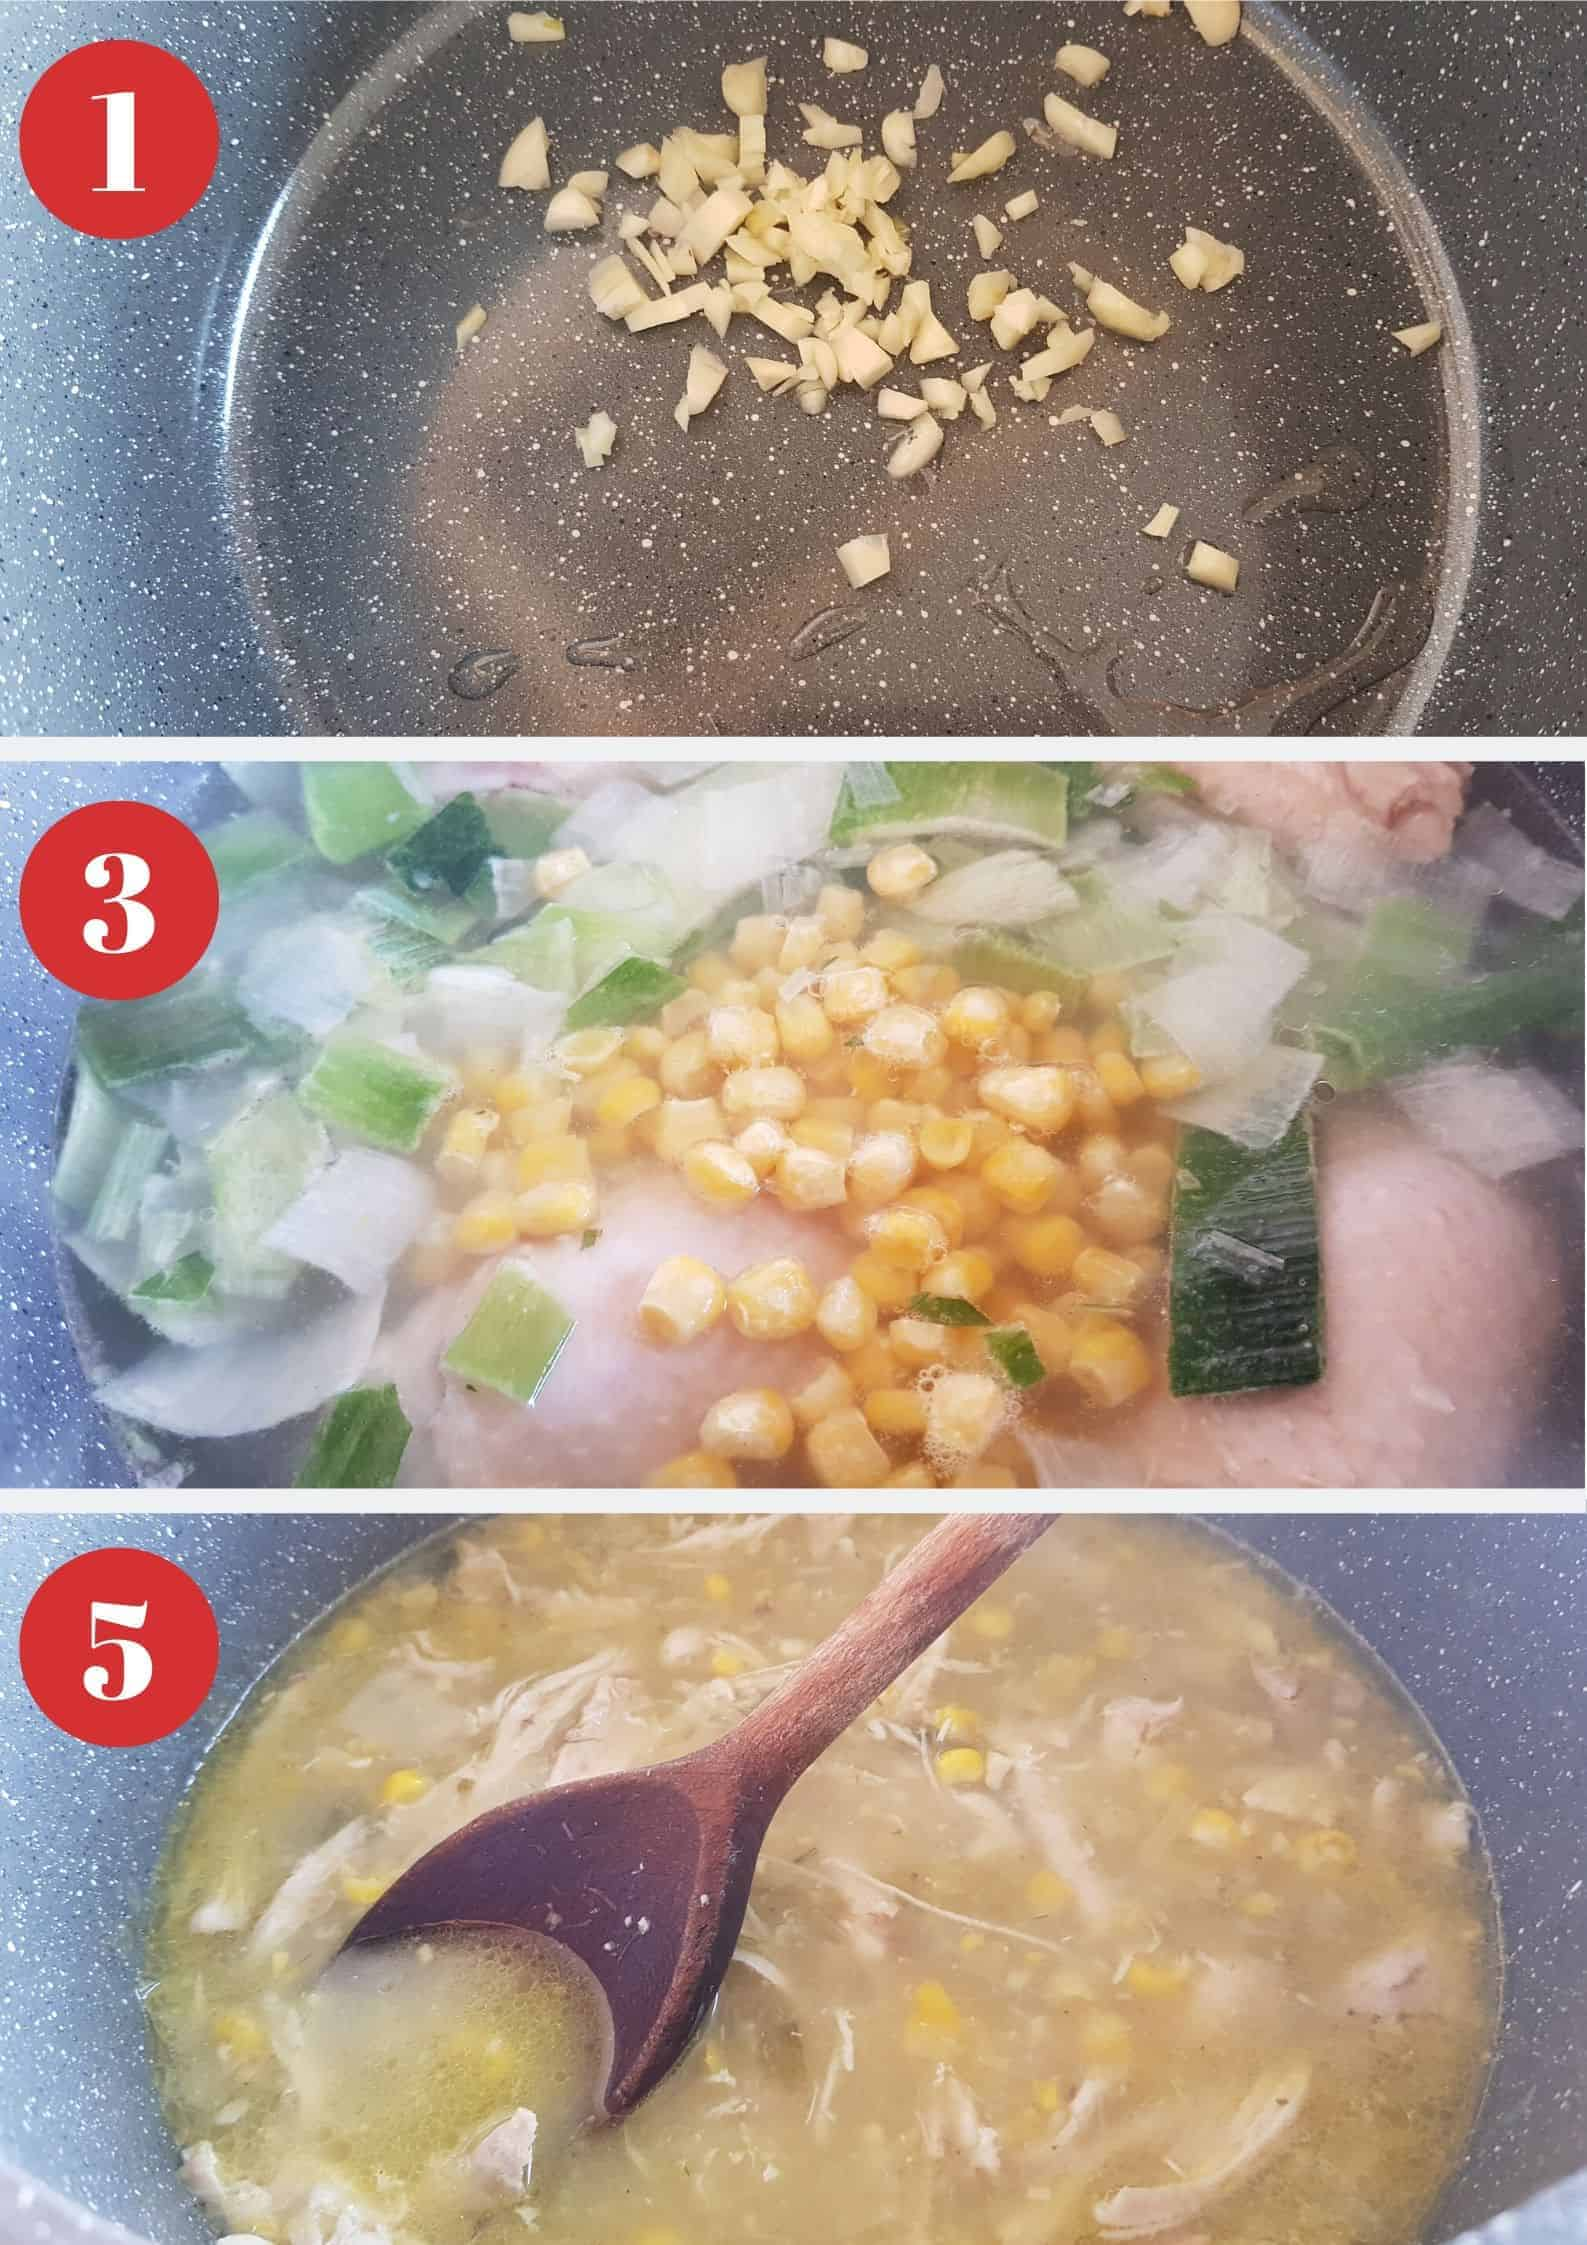 Infographic showing How to make chicken and sweetcorn soup.